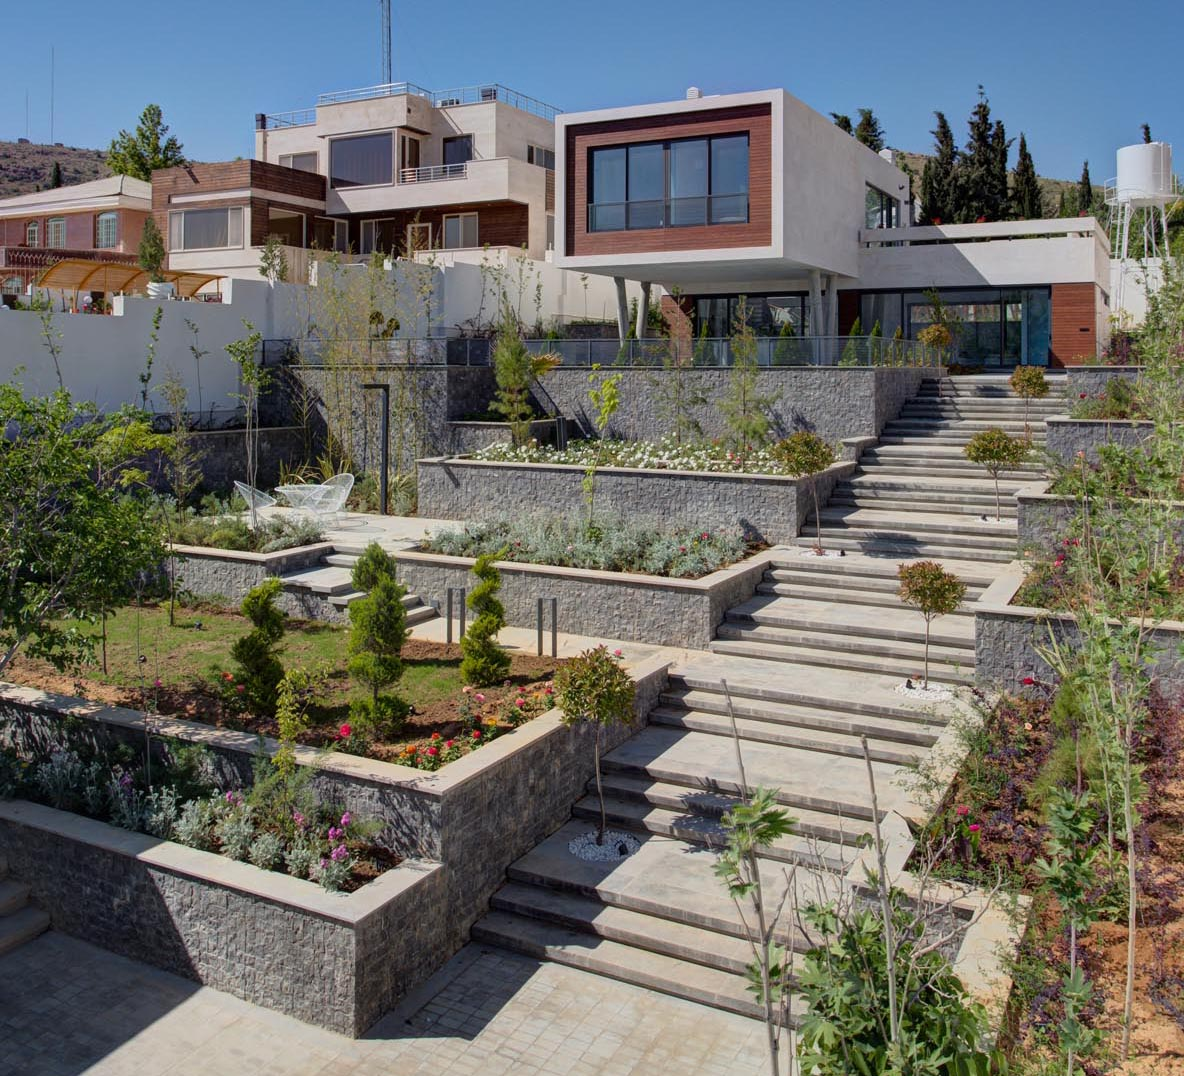 Terraced Landscaping Provides This Home With Multiple Gardens